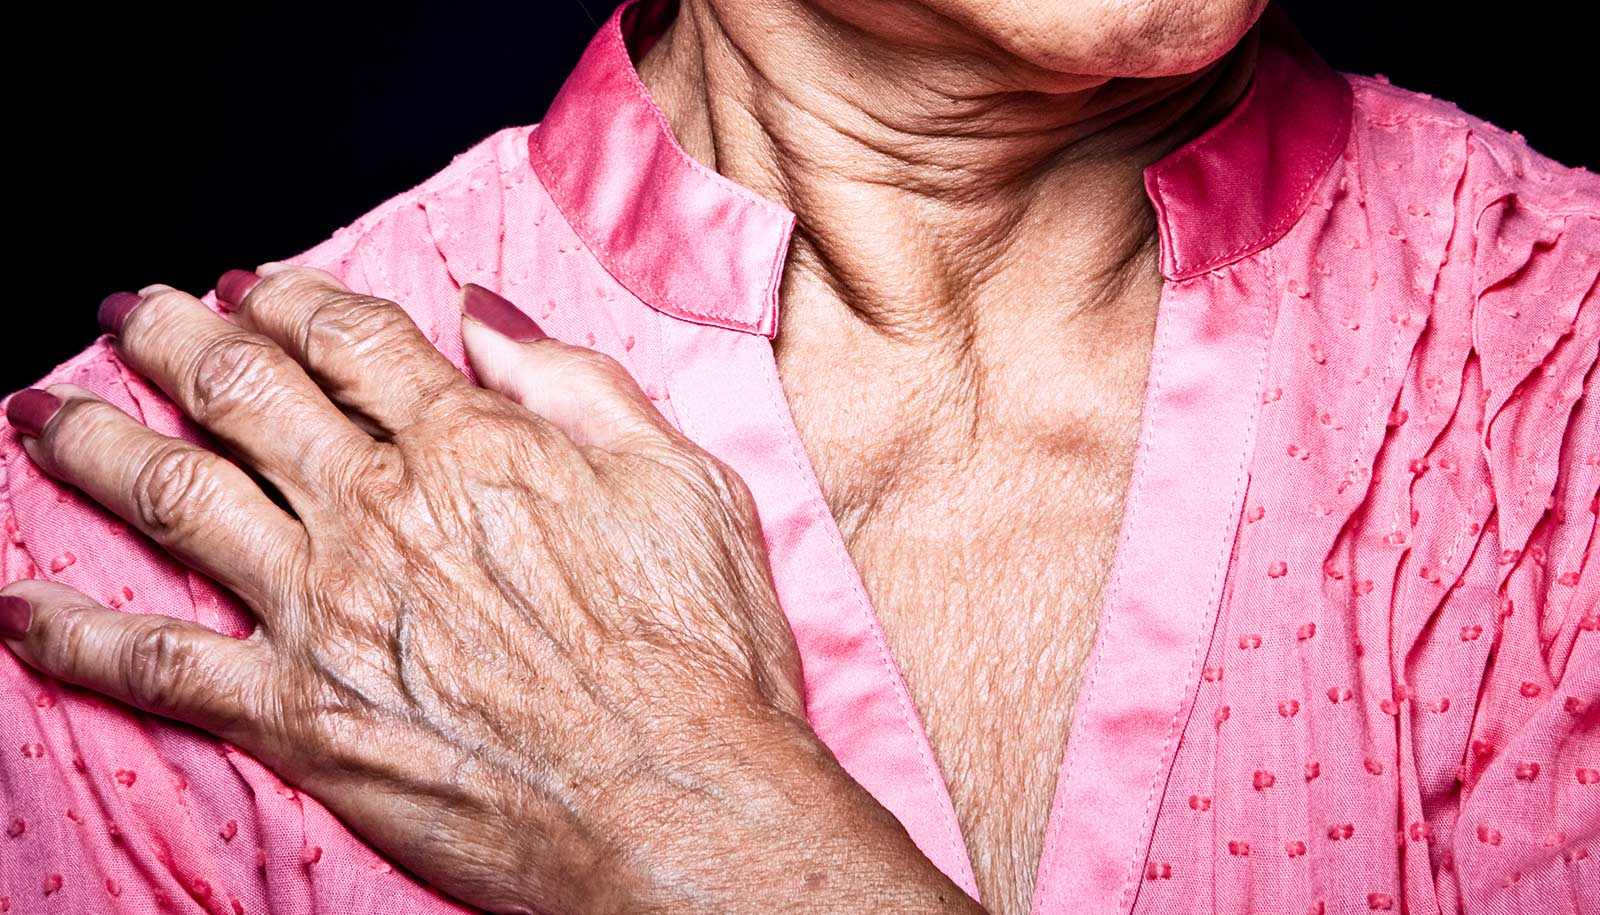 This breast reconstruction surgery limits shoulder motion